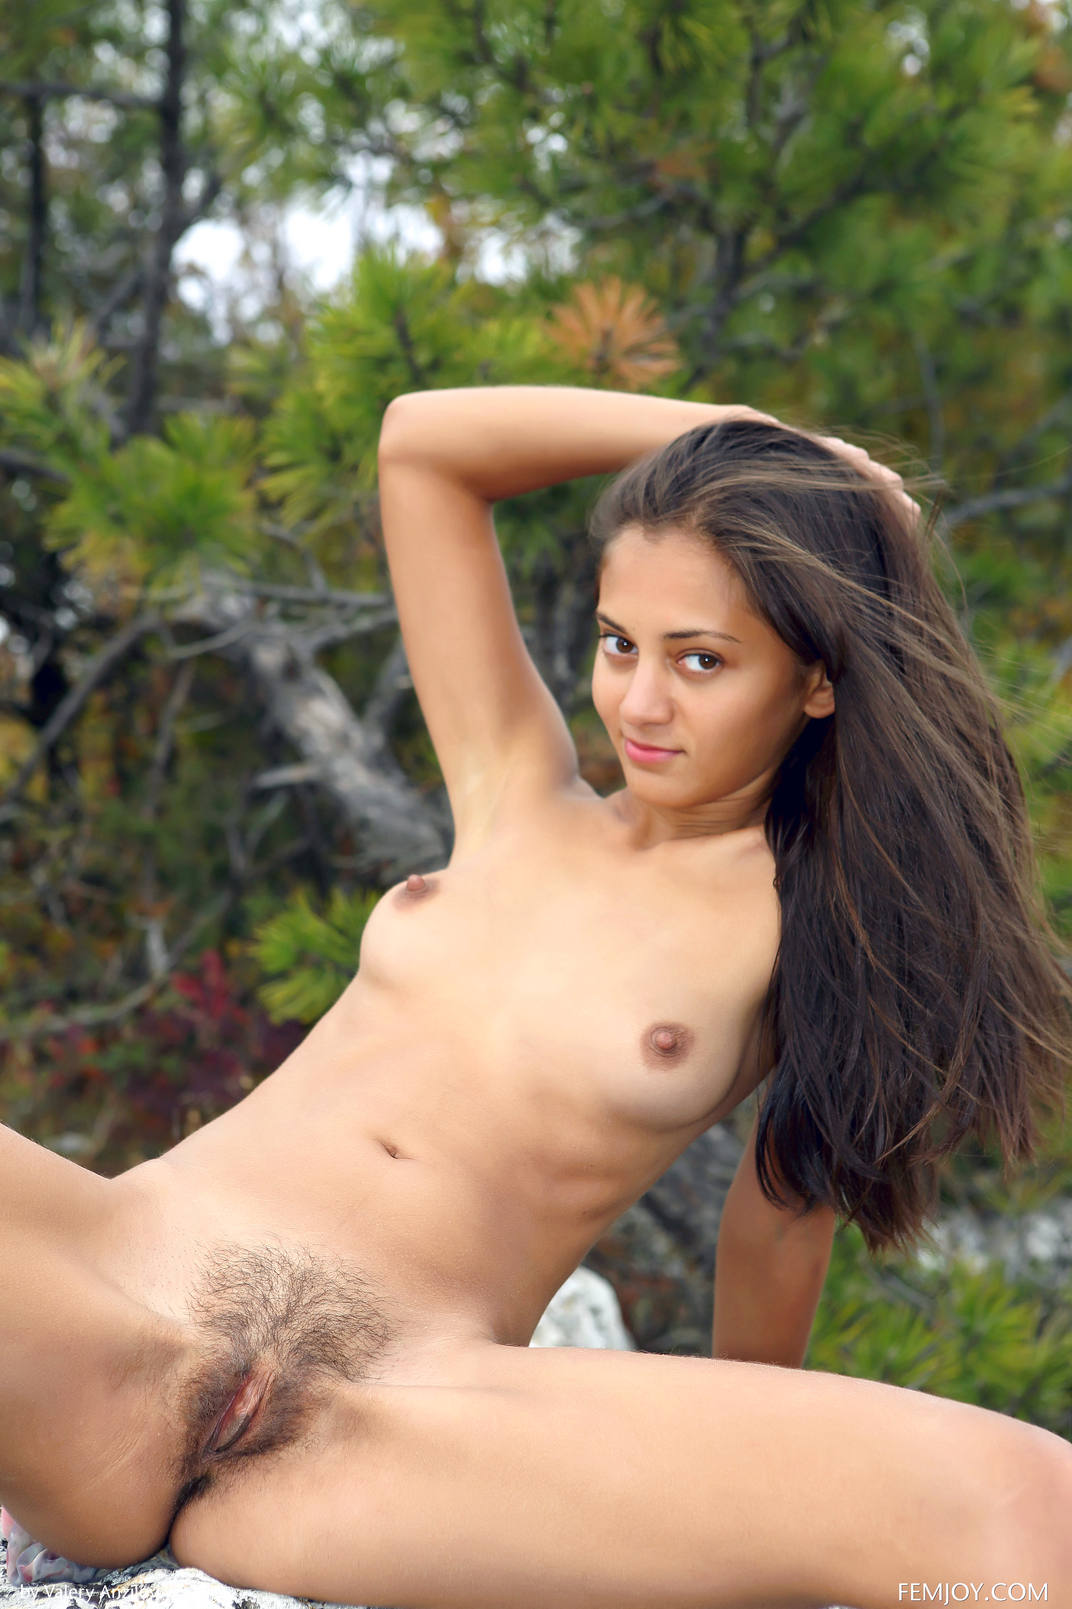 Remarkable, amusing Fotos nudist junior something